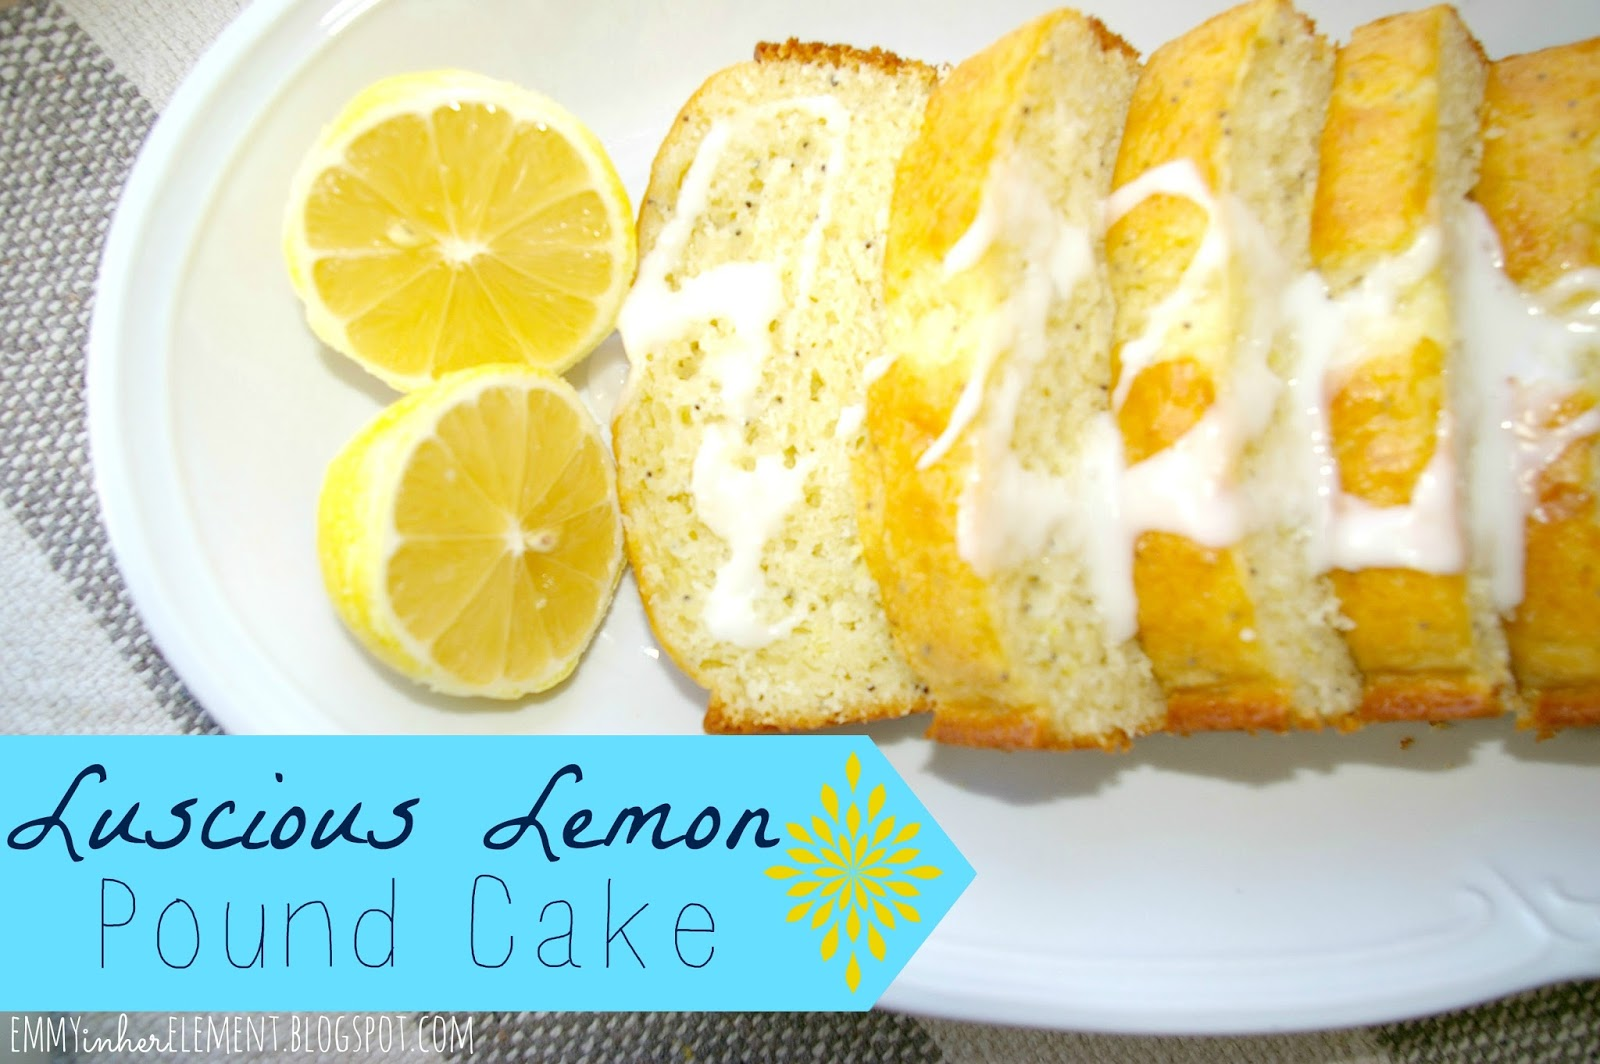 Barefoot Contessa Lemon Poppyseed Pound Cake